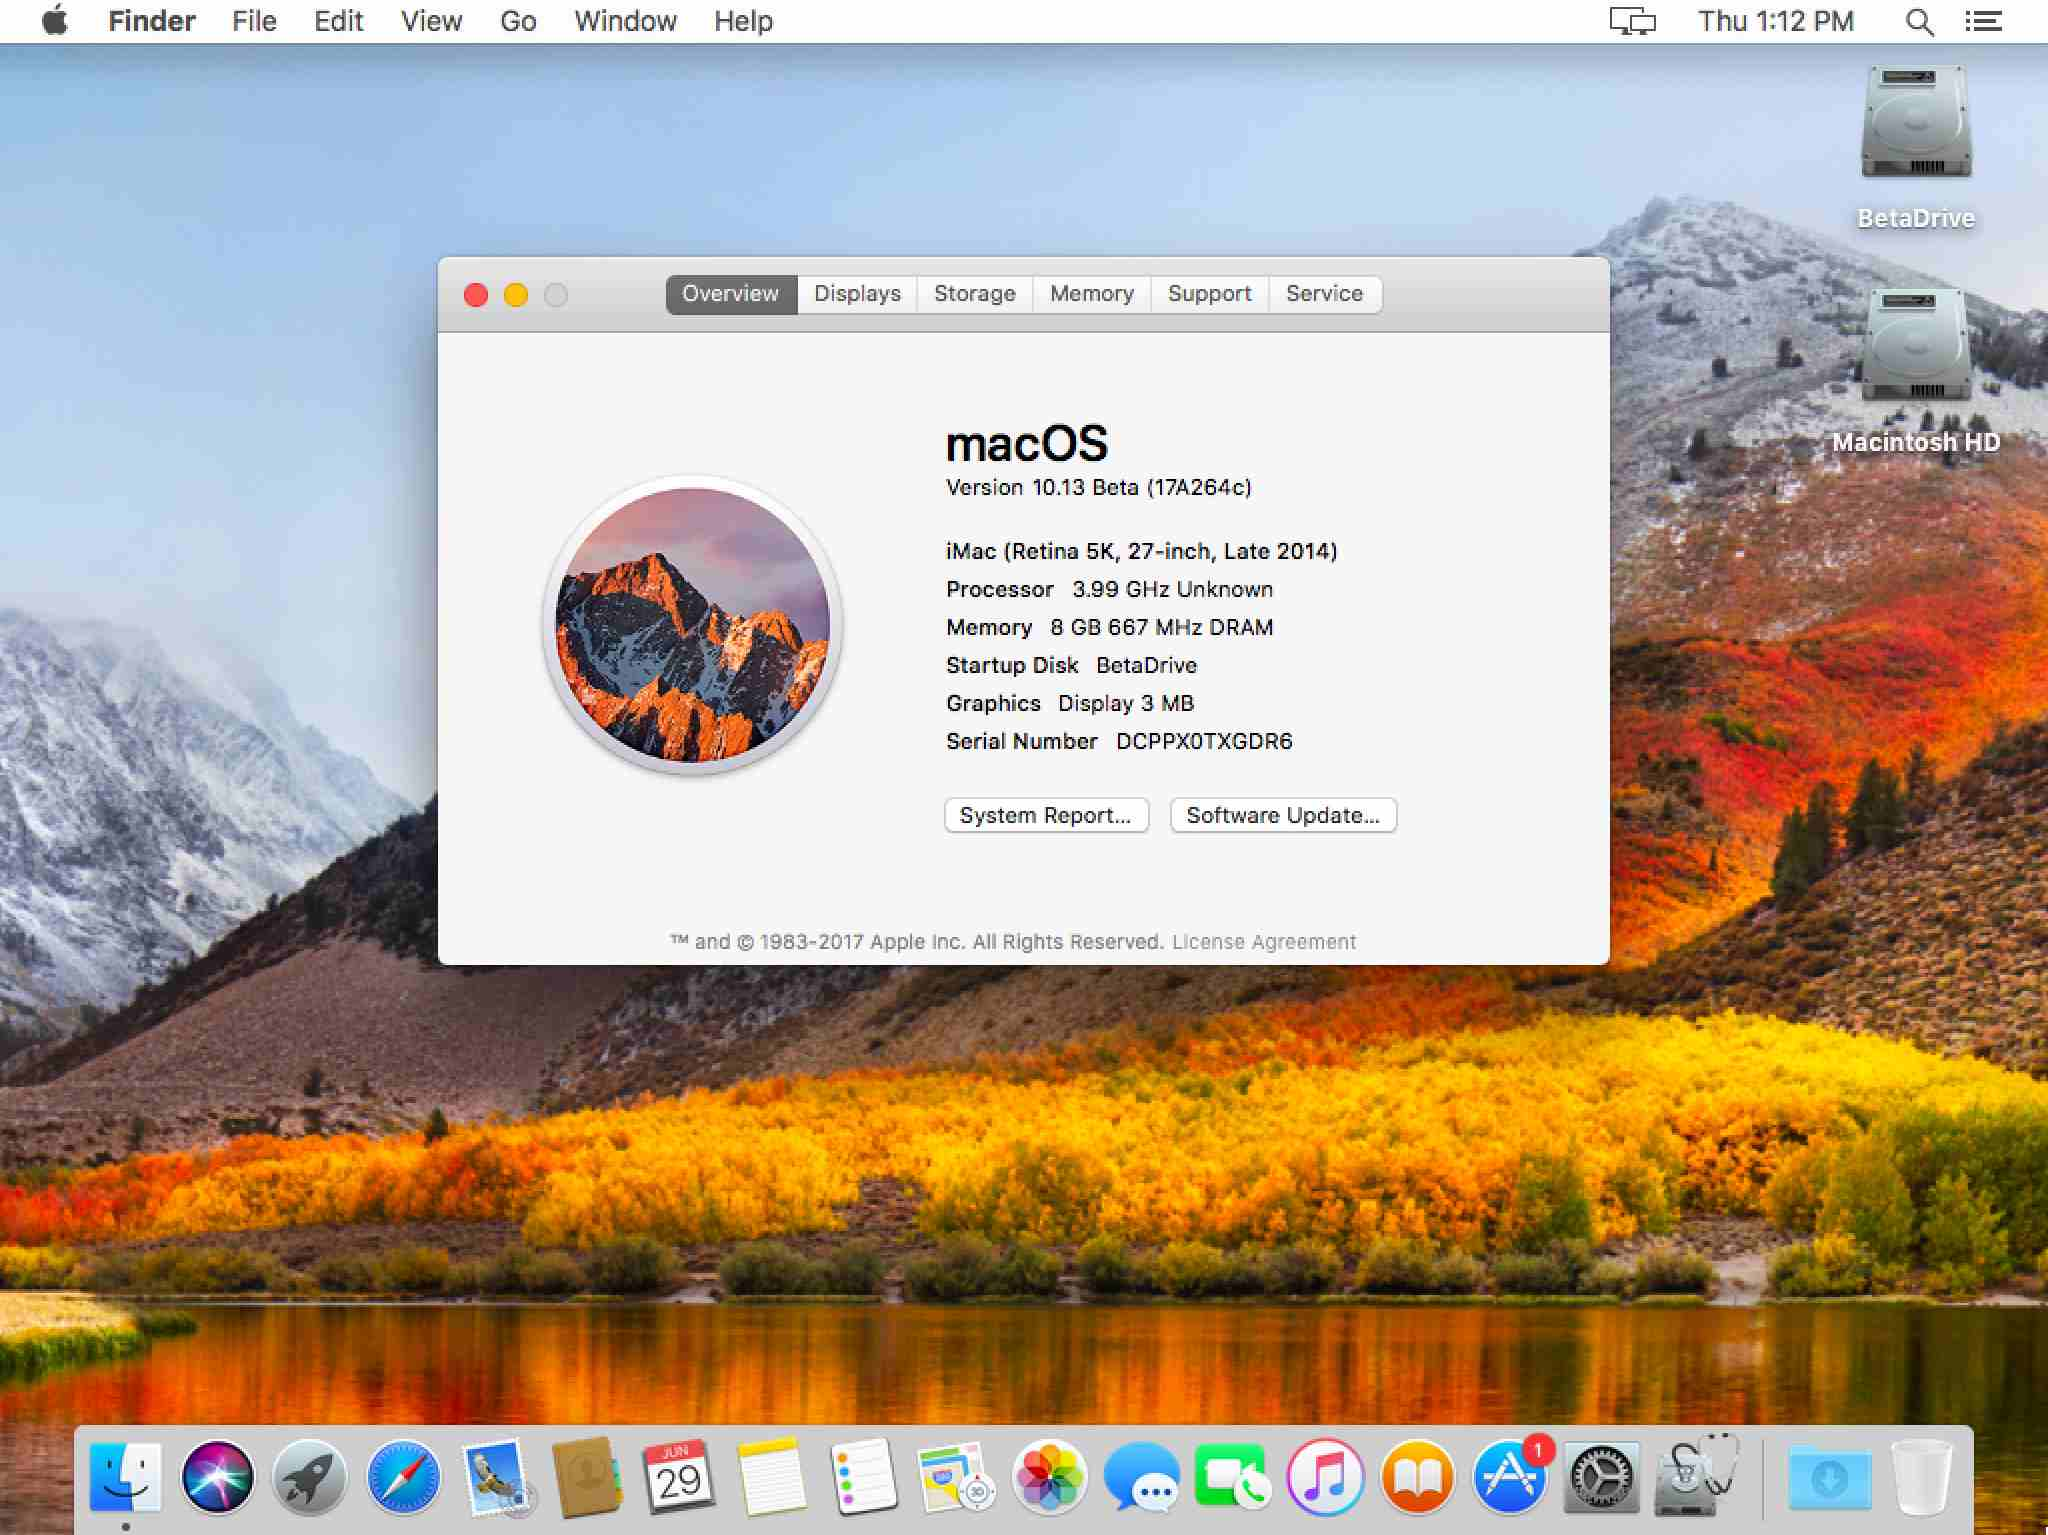 macOS: What Is It and What's New?